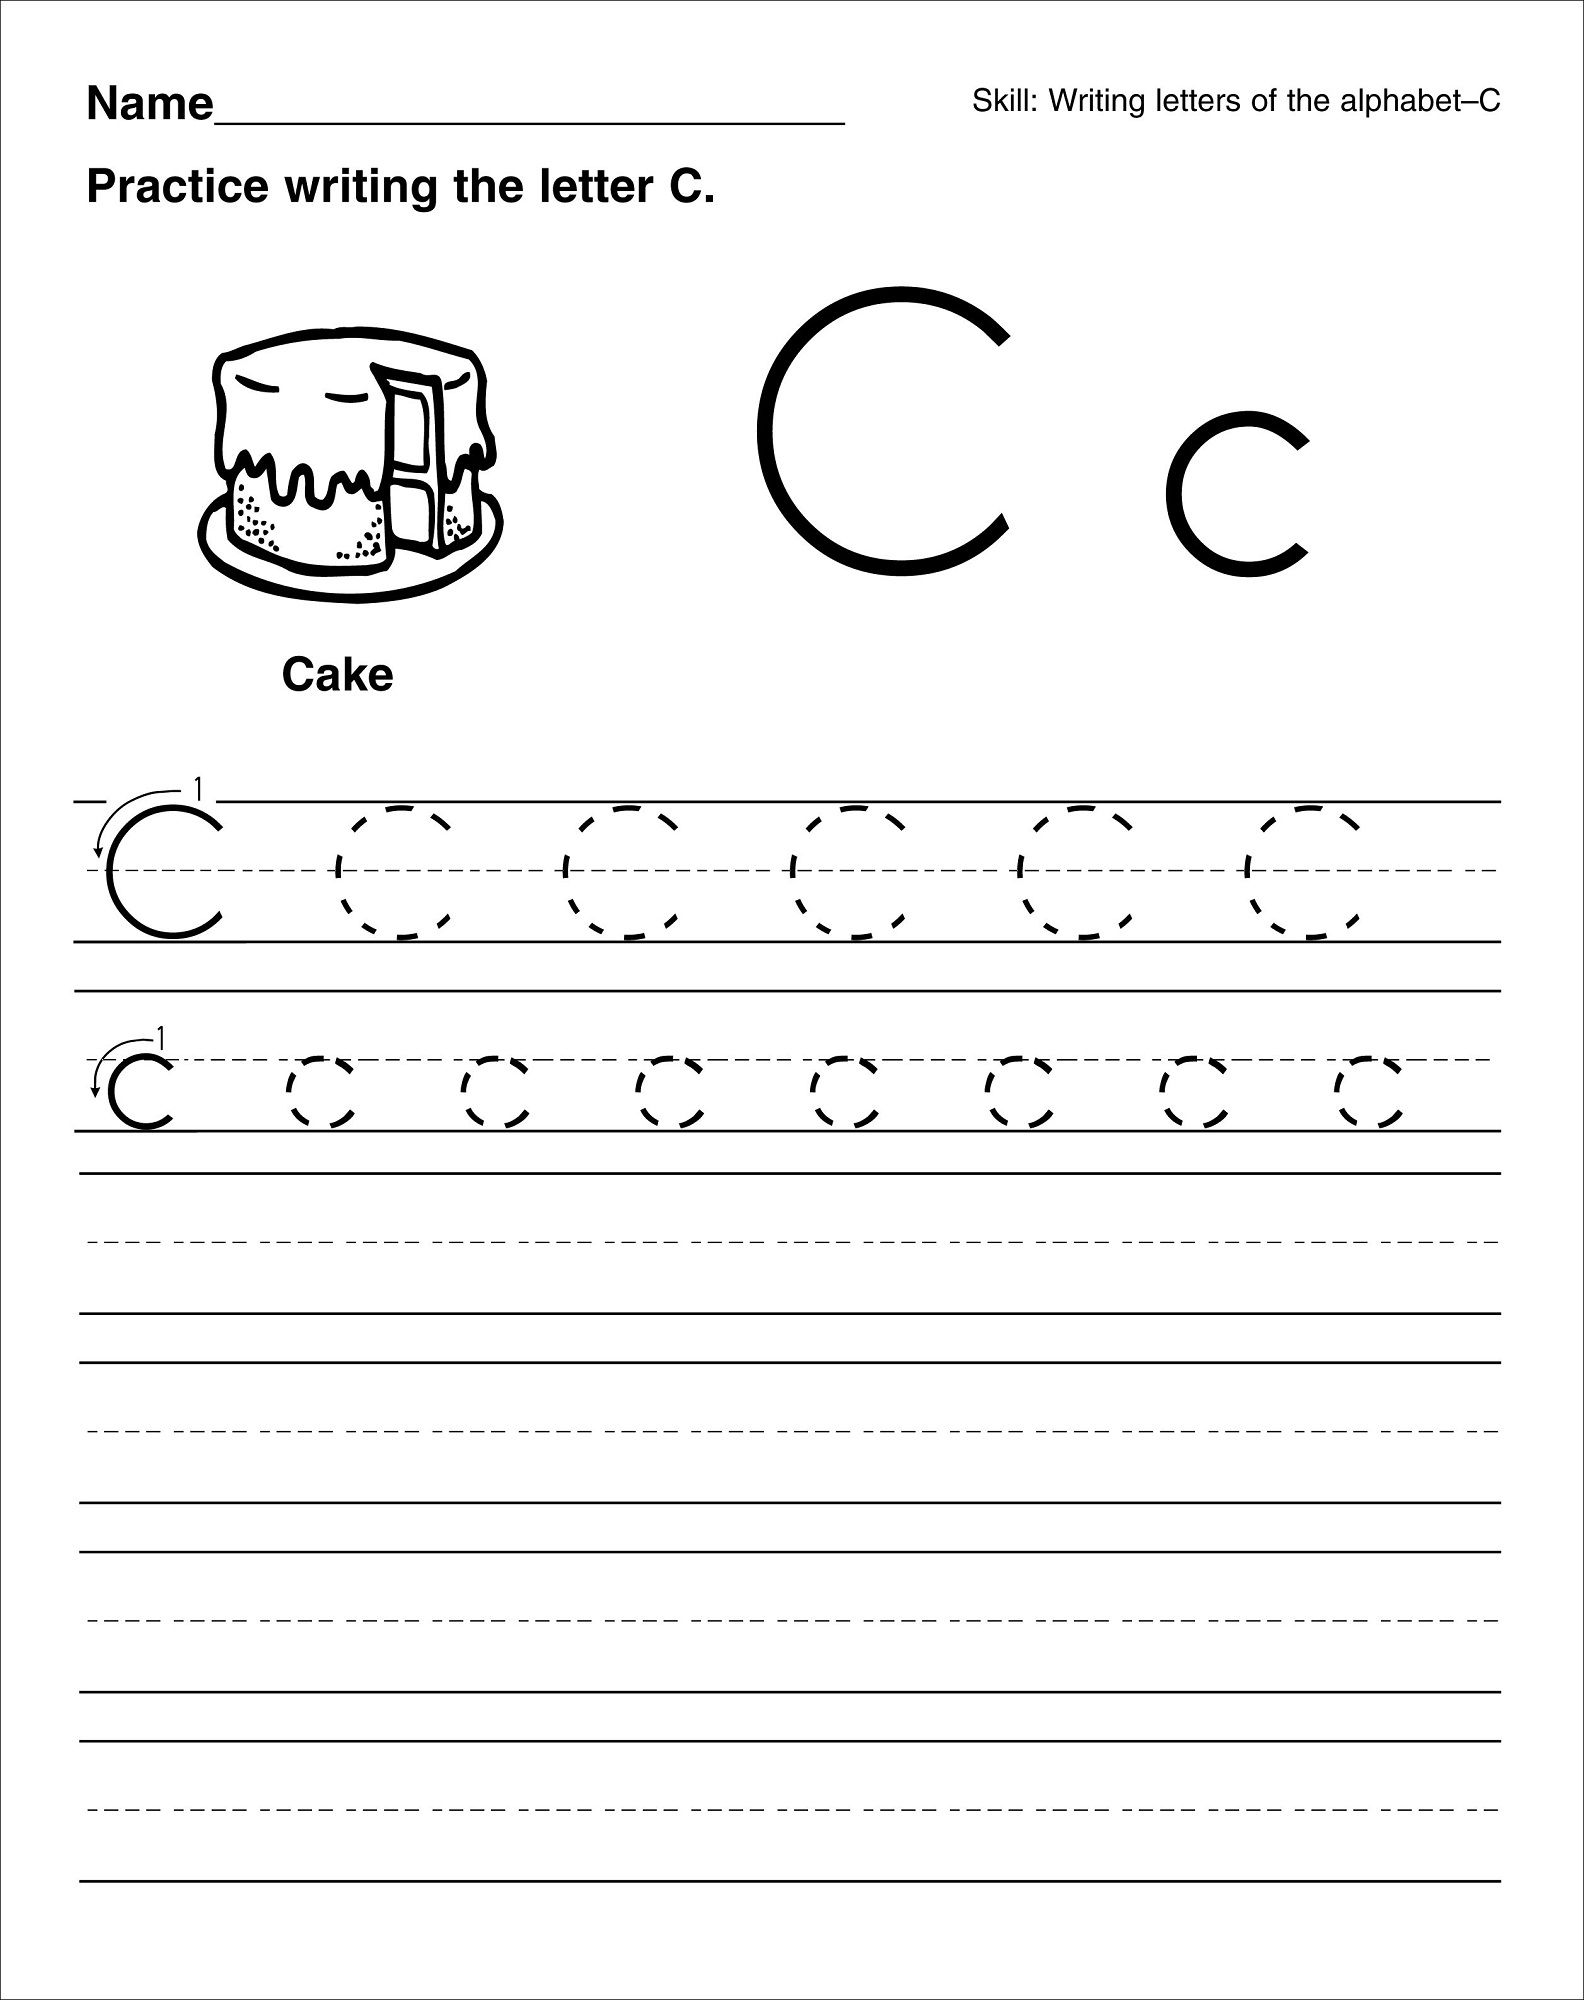 trace the letter c worksheets activity shelter kids worksheets printable pinterest. Black Bedroom Furniture Sets. Home Design Ideas